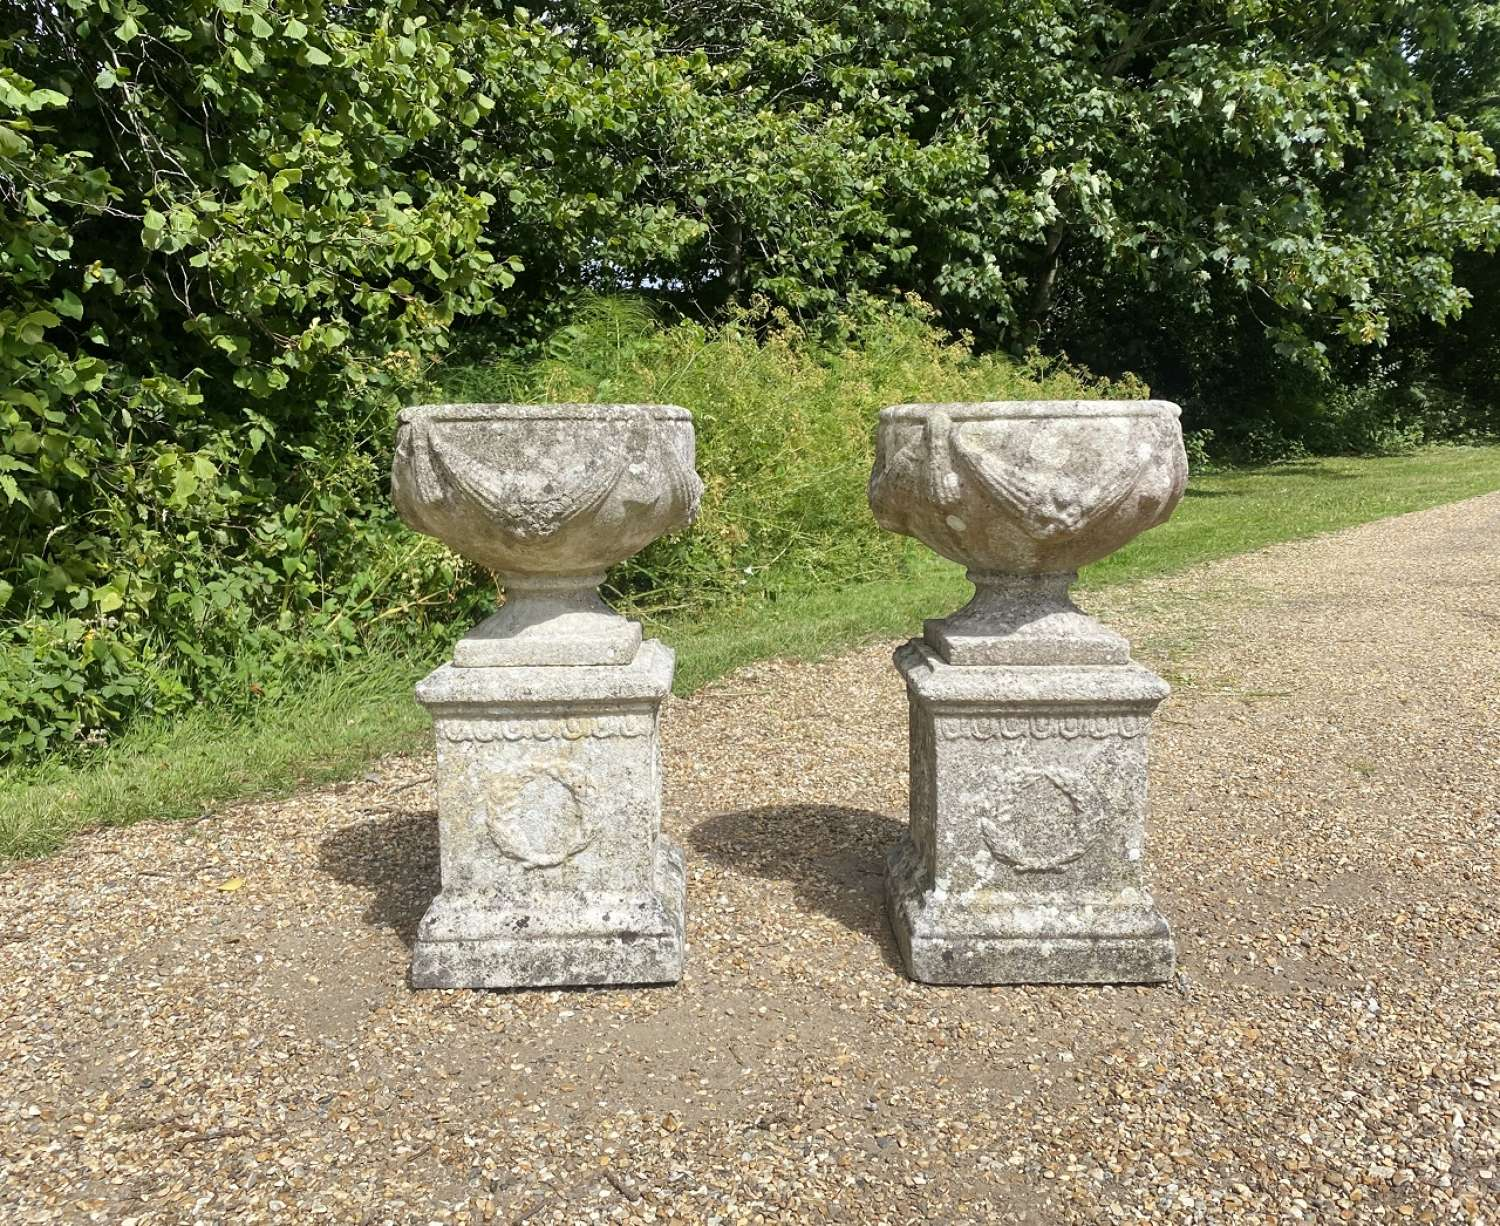 Pair of Small Patinated Urns with Pedestals